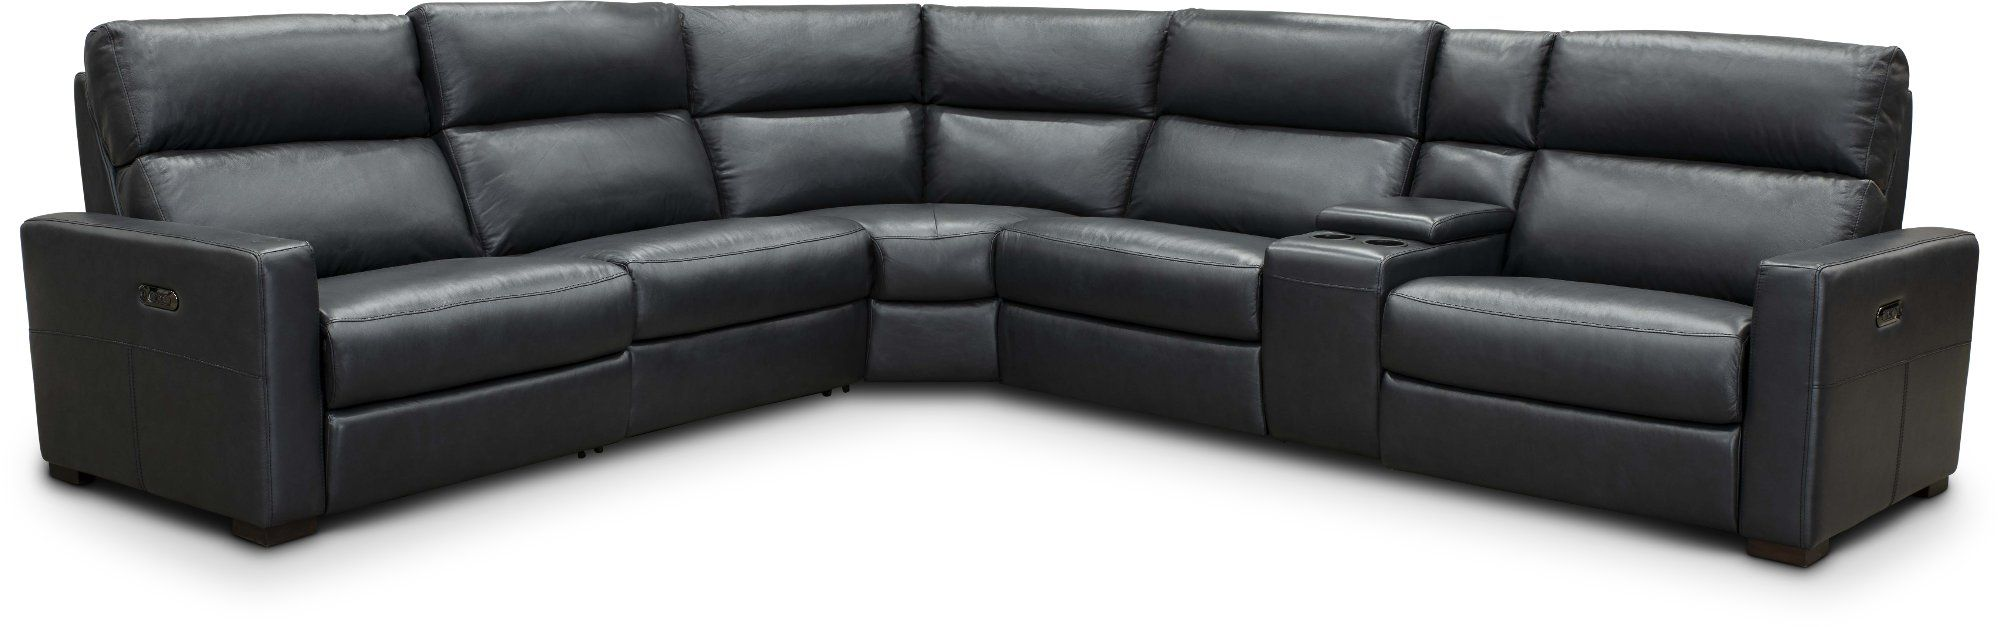 Navy Blue Leather Match Power Reclining Sectional Sofa Angler